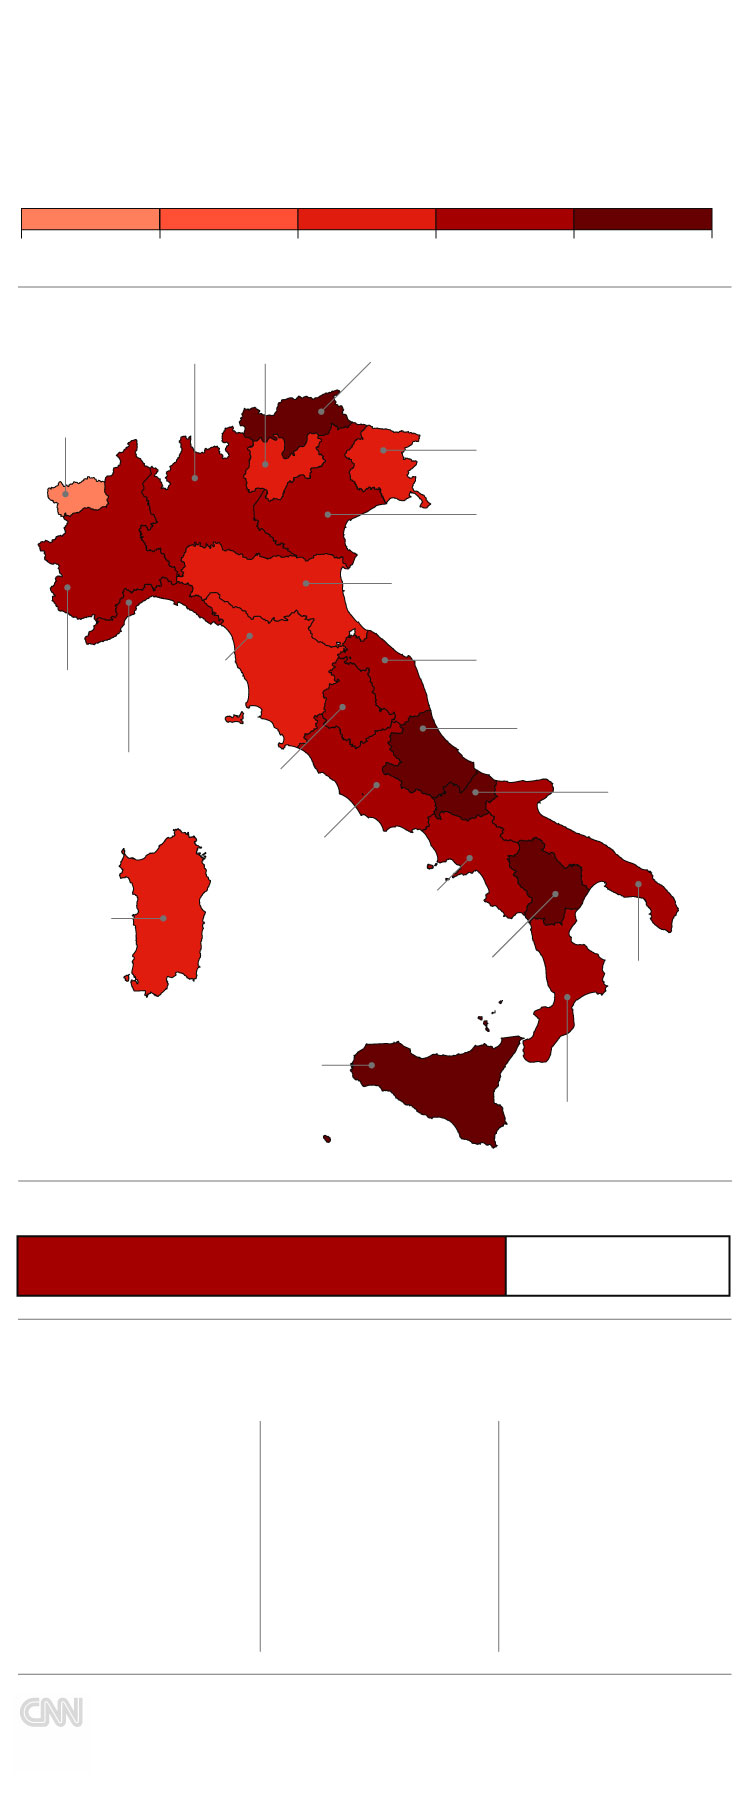 In Italy, abortion is a right  For many women there, getting